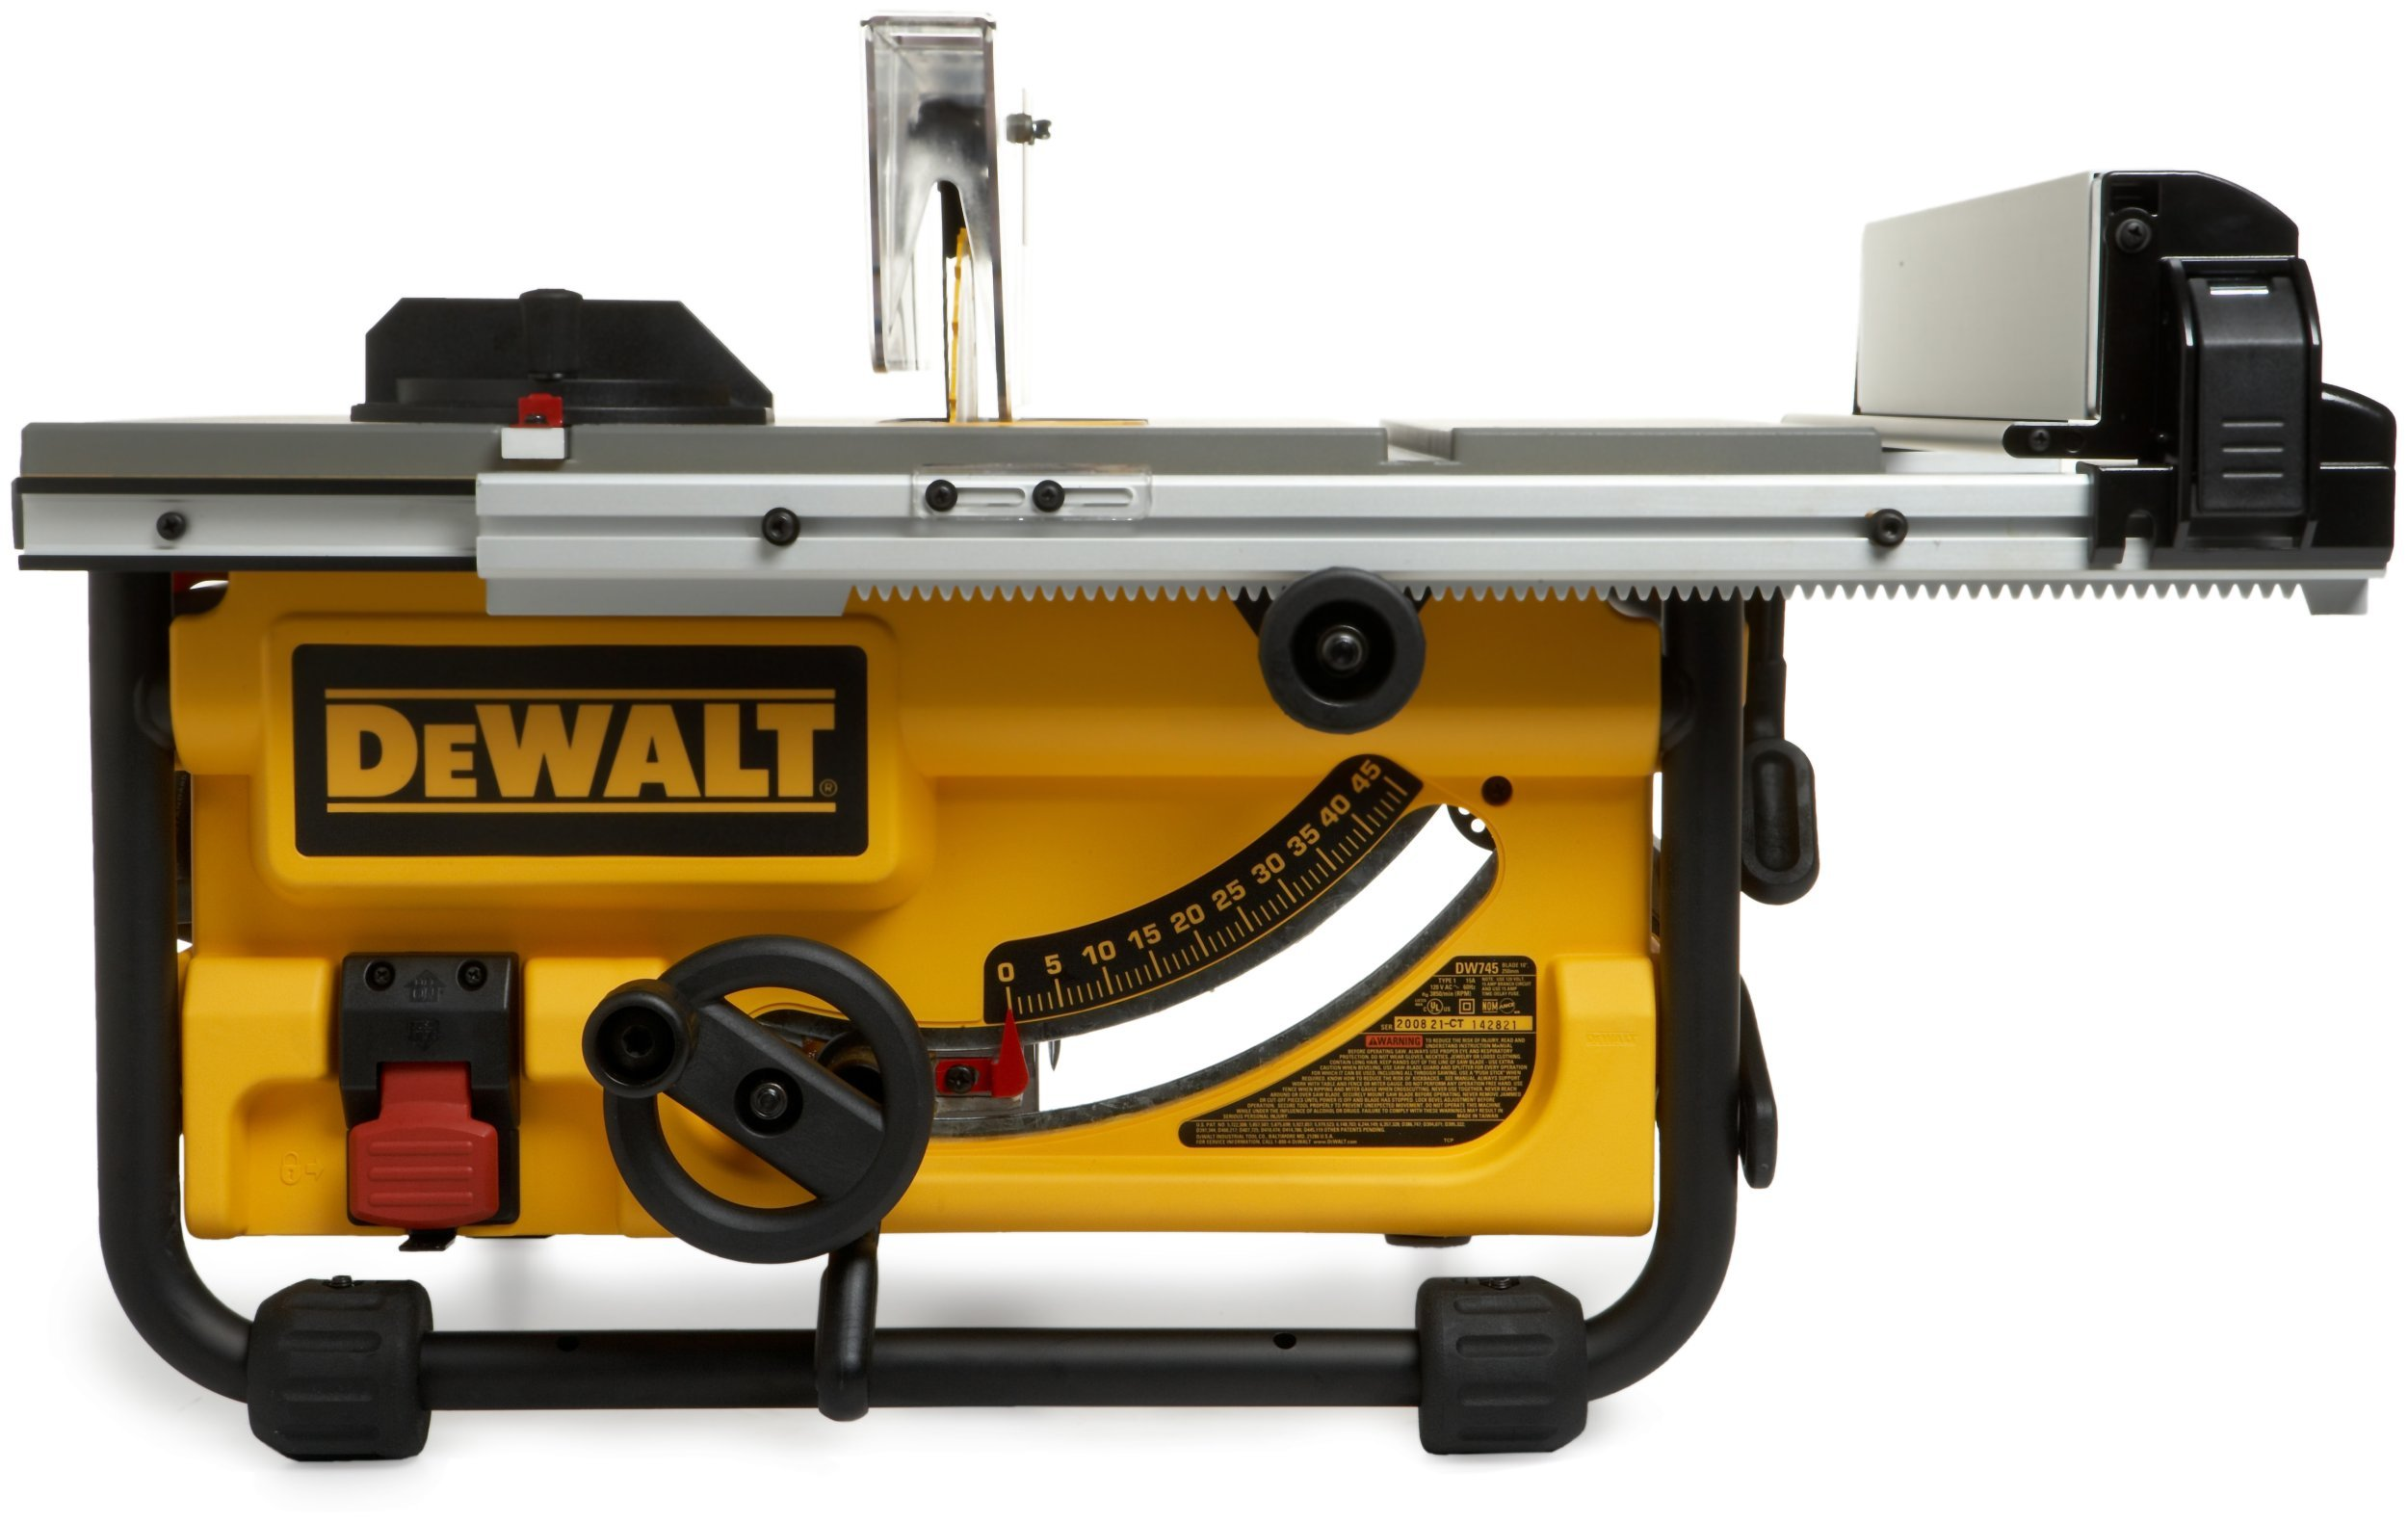 DEWALT DW7440RS Rolling Saw Stand with DW745 10-Inch Compact Job-Site Table Saw with 20-Inch Max Rip Capacity - 120V by DEWALT